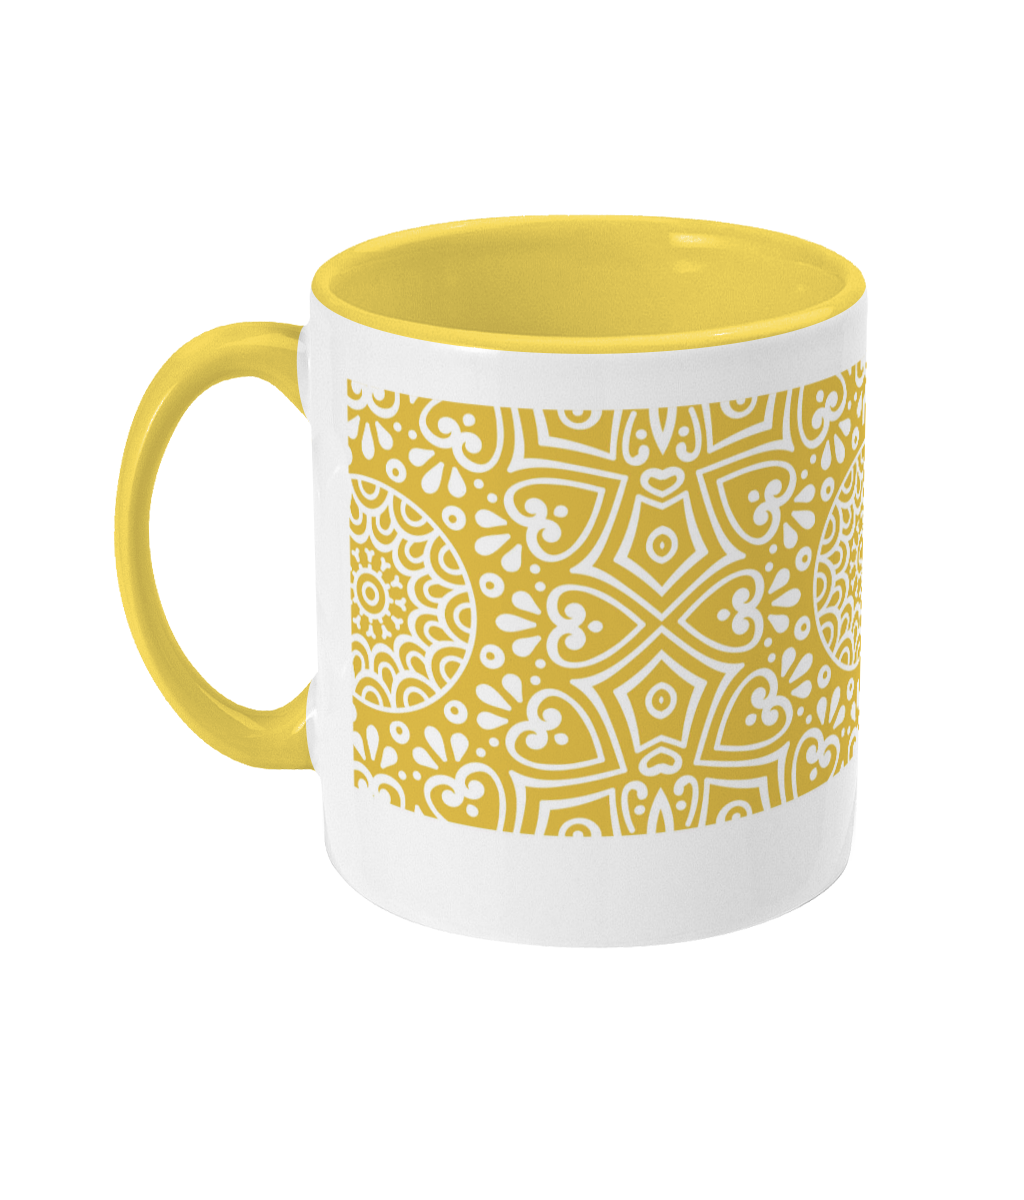 Sunset Yellow Coffee Cup 004